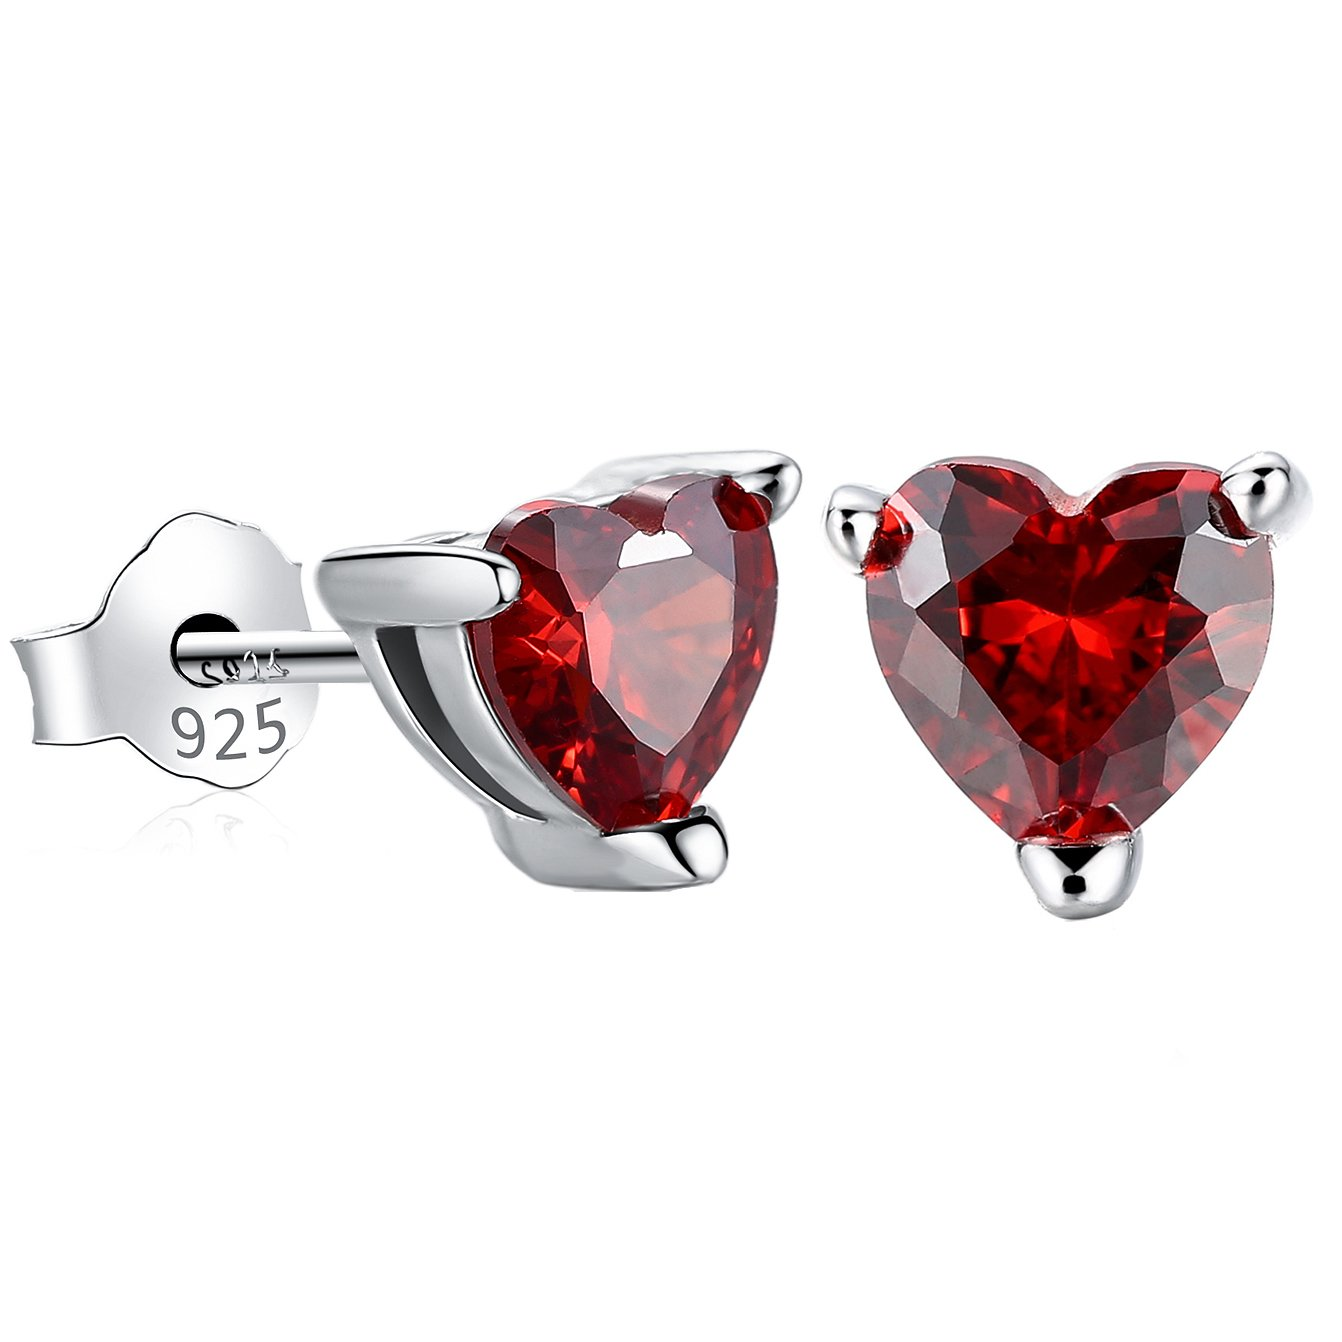 Gagafeel Red Heart Earrings for Women S925 Sterling Silver CZ Birthstone Xmas Valentine Birthday Small Stud Earrings Gift for Girls